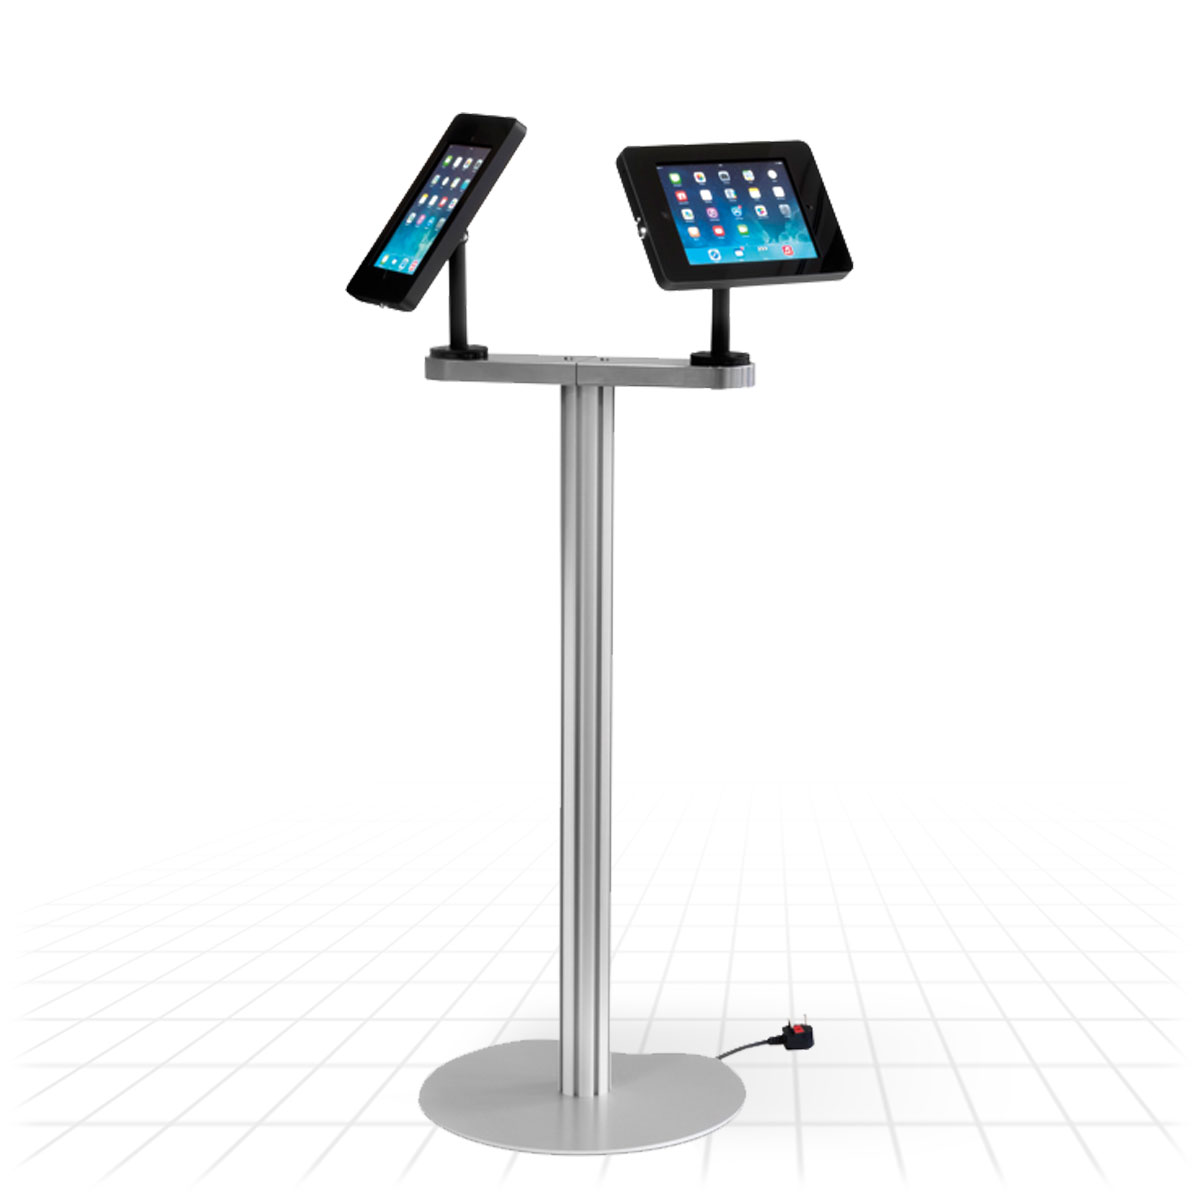 Ipad Duo Display Stand Tablet Display Stands